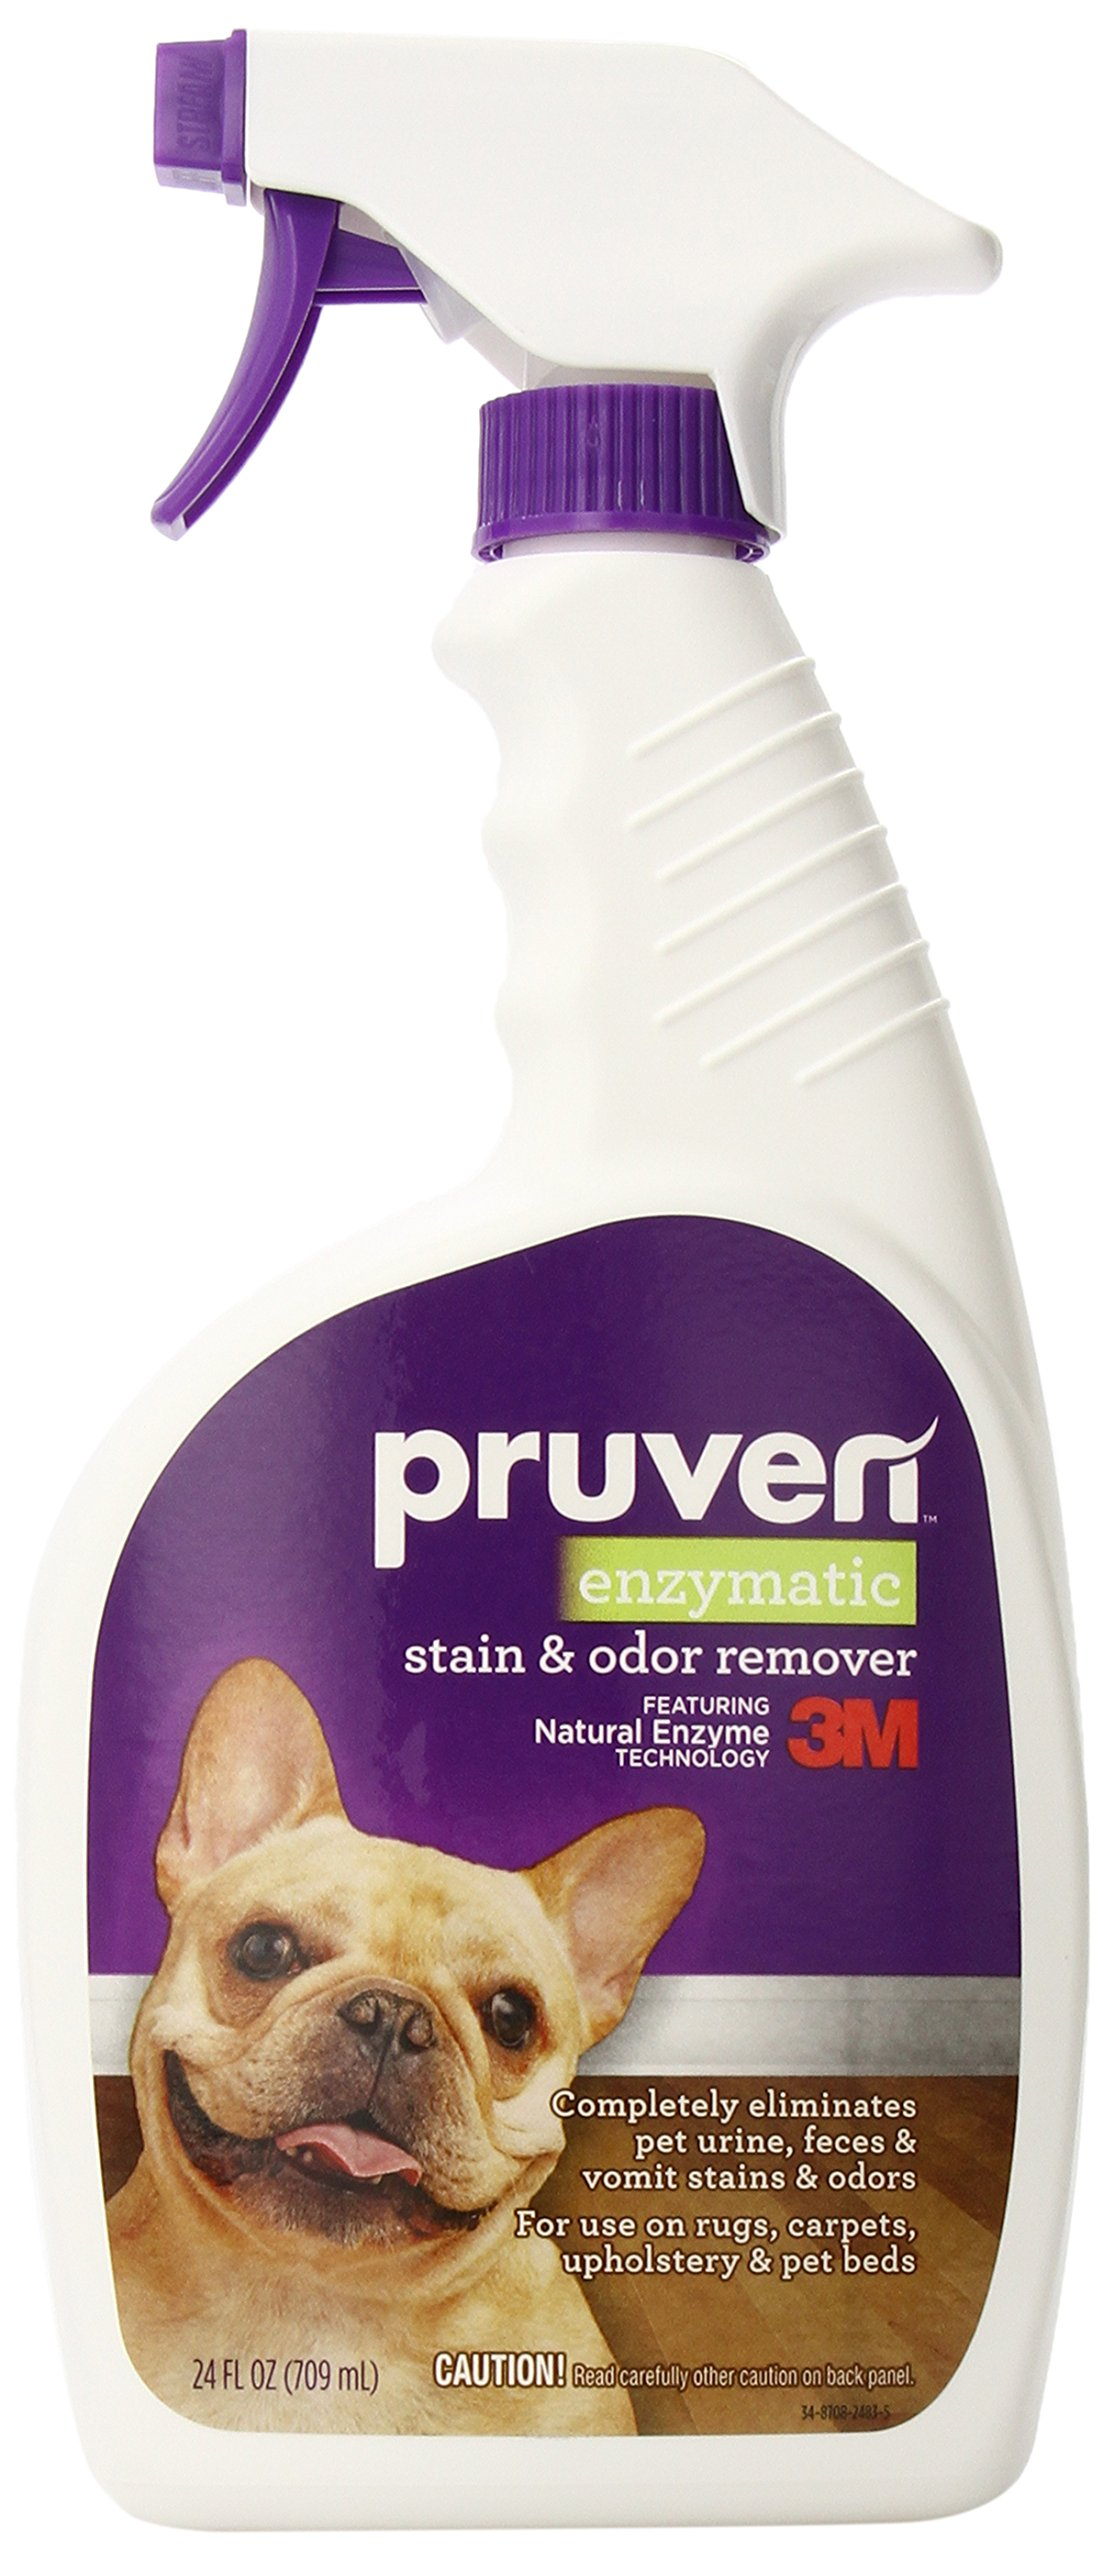 Pruven P-ENZ-24 Enzymatic Stain and Odor Remover with Trigger Spray, 24 Fluid Ounce